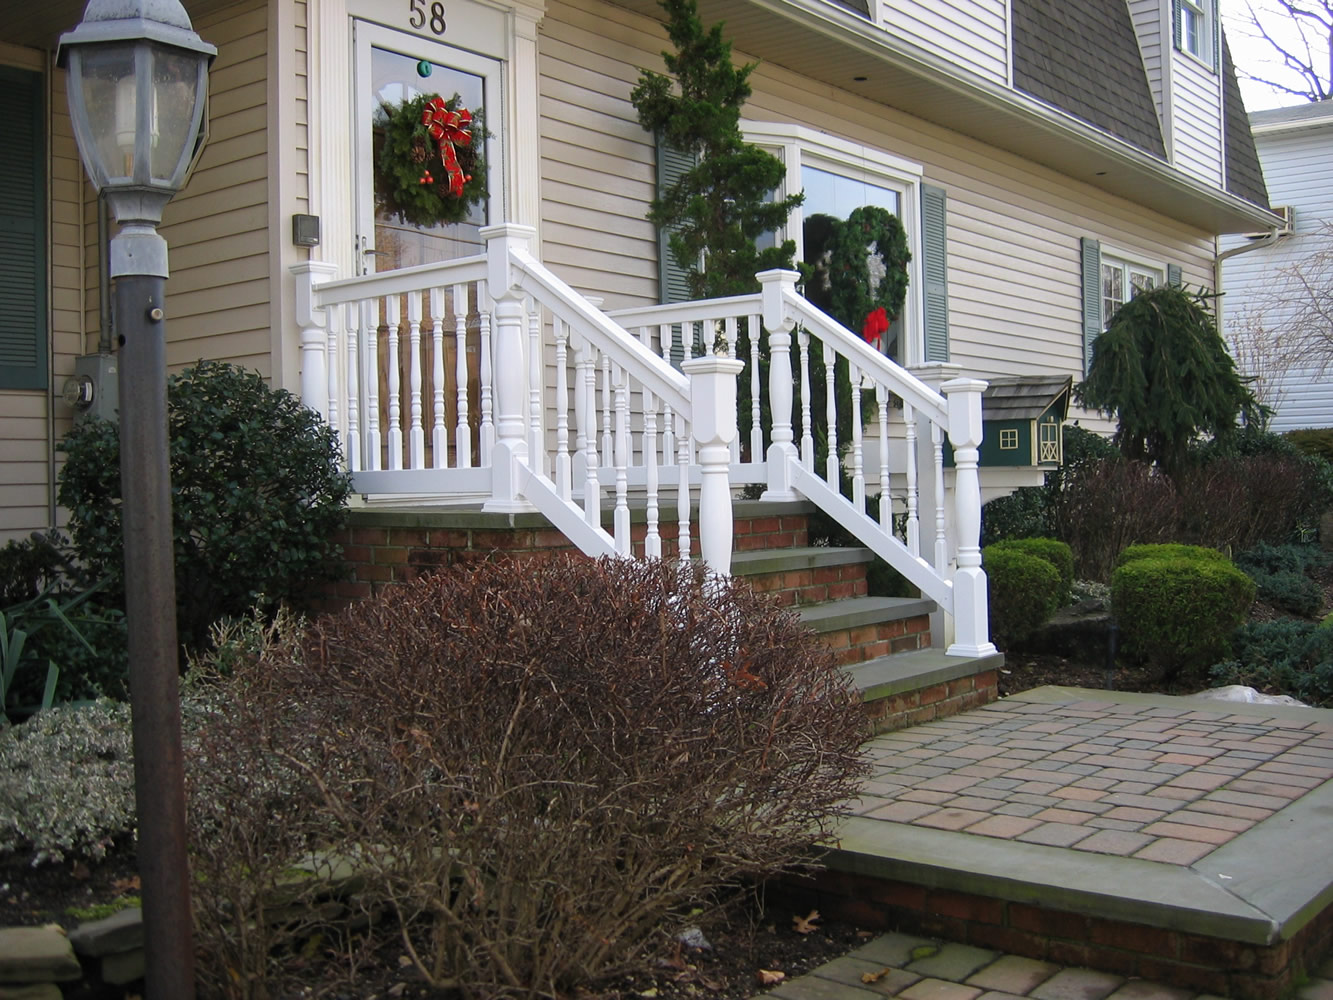 Reno Style PVC Railing with T-rail Tops and Heritage Colonial Posts